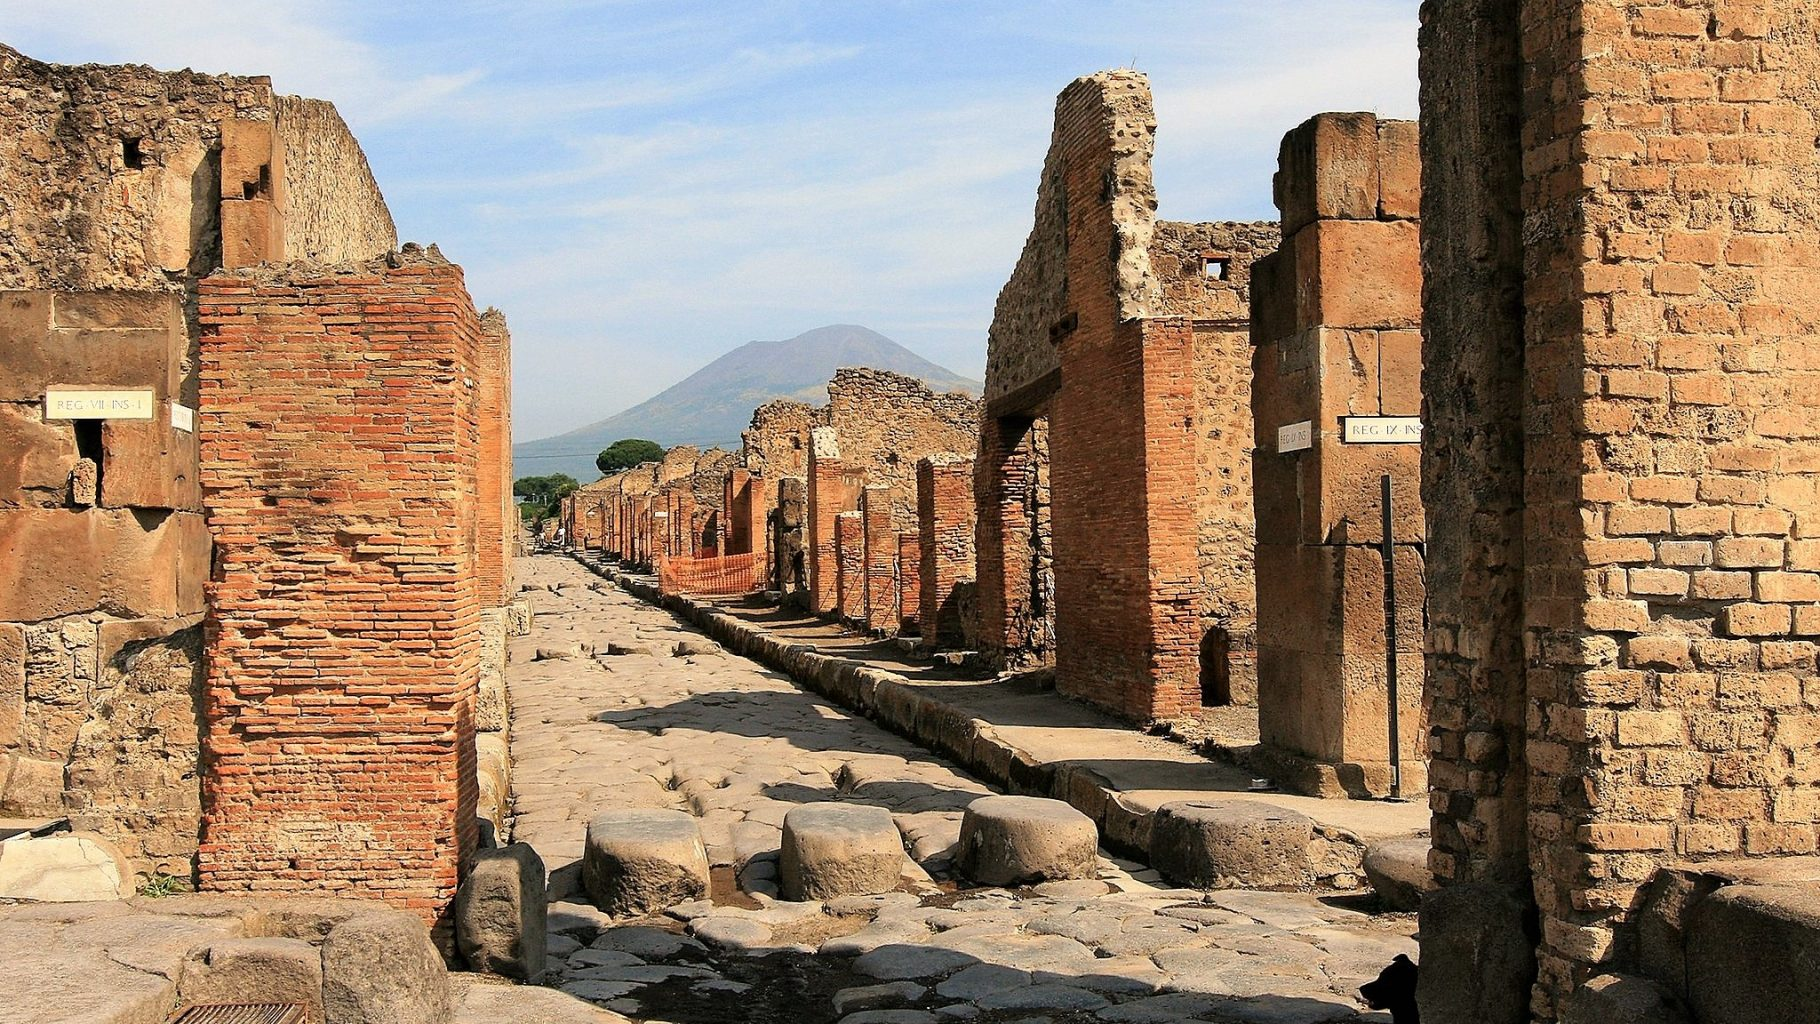 Image: Cobbled stone streets of Pompeii with Mt. Vesuvius in the distance